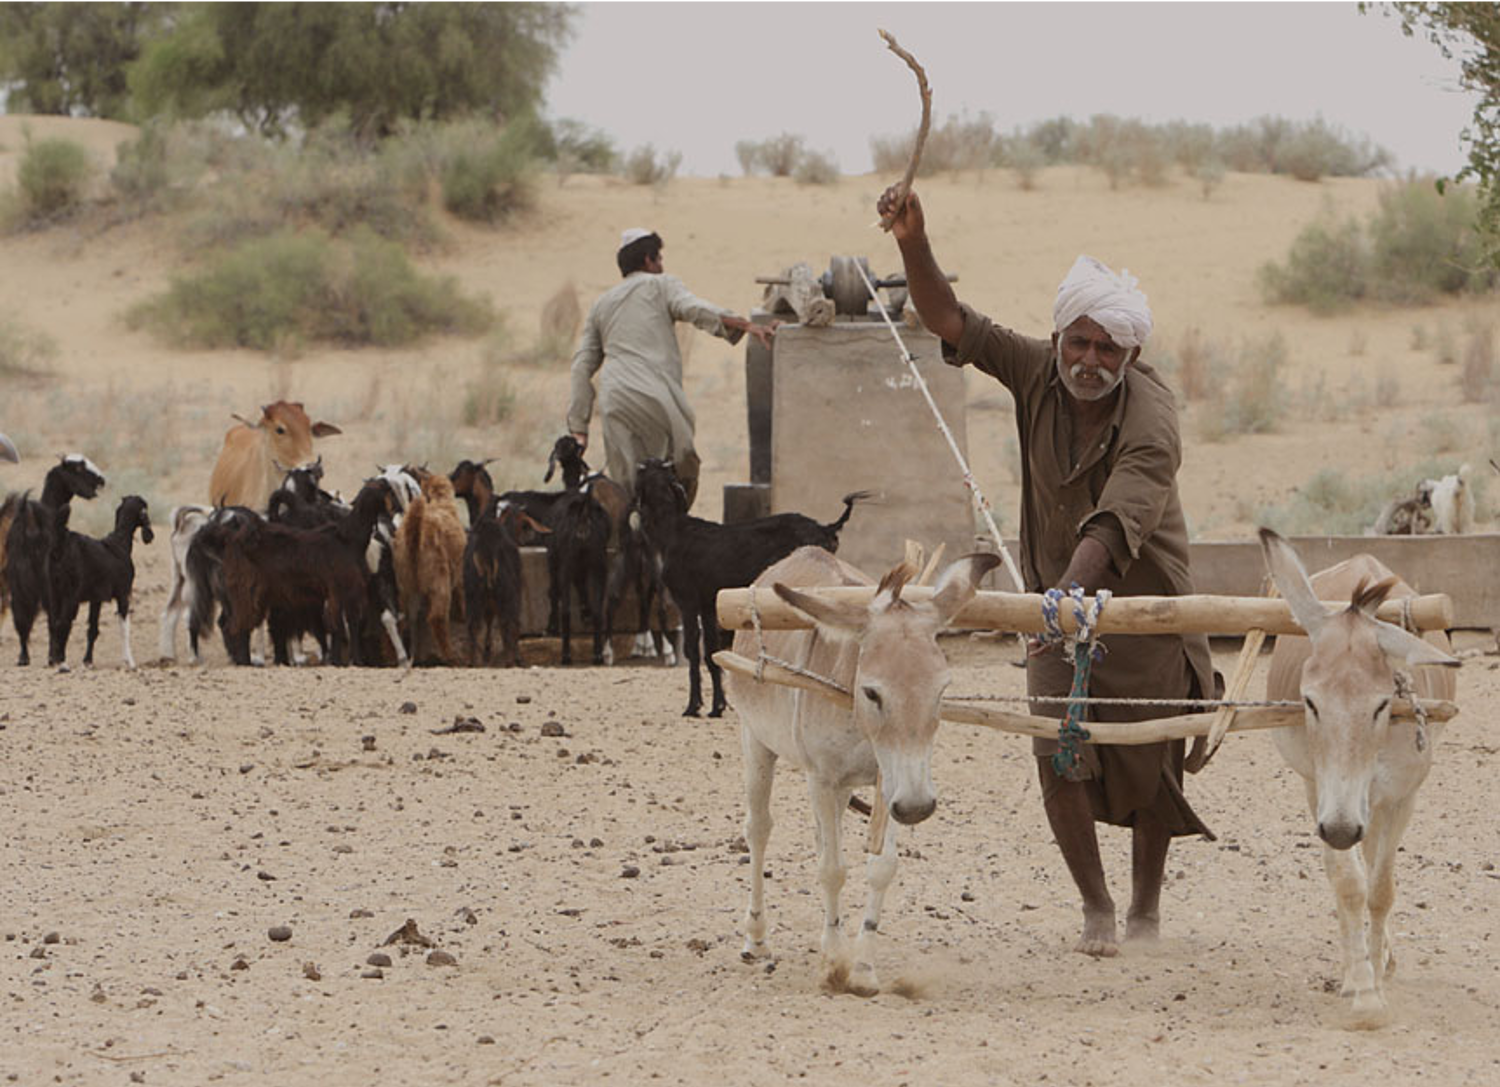 A villager takes the help of a pair of donkeys to pull water from a deep well in Thar. Photo by Gobind Sagar Bhardwaj.